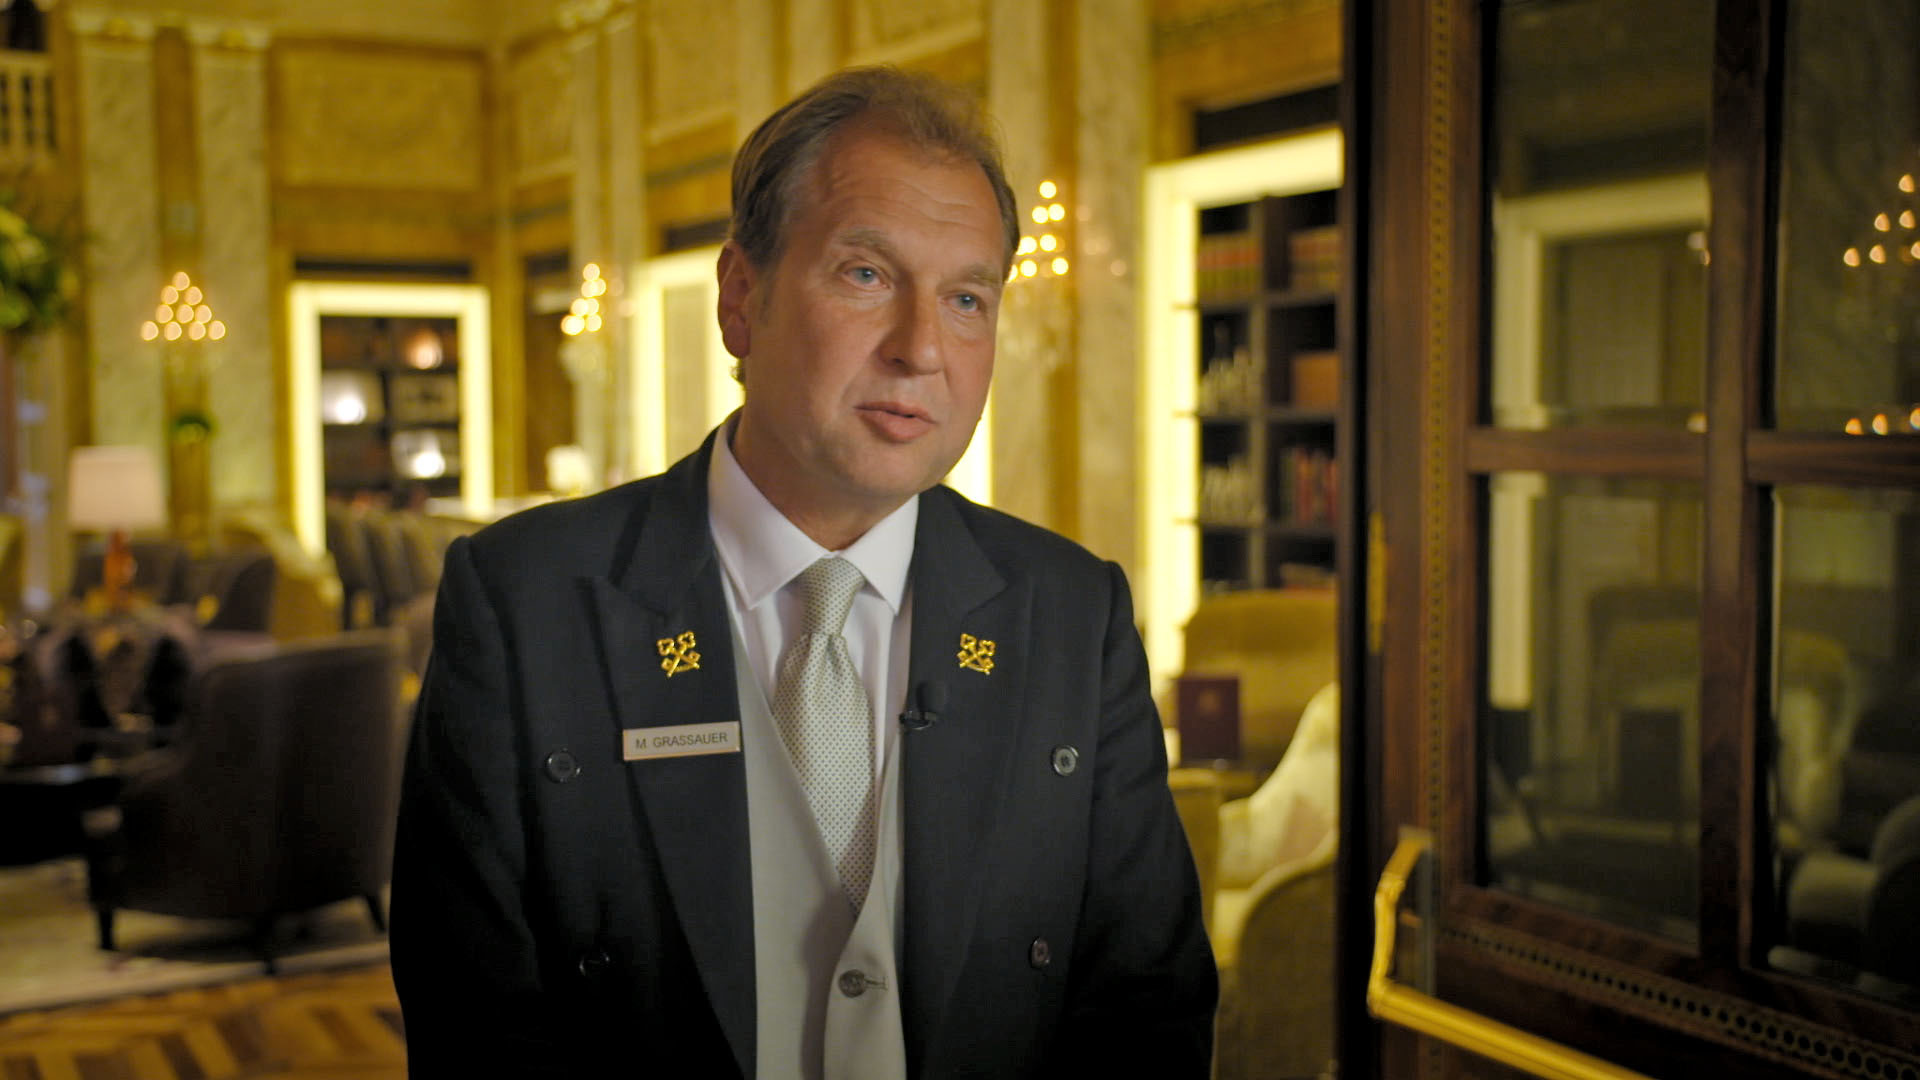 Manfred-Grassauer-Chef-Concierge-Imperial